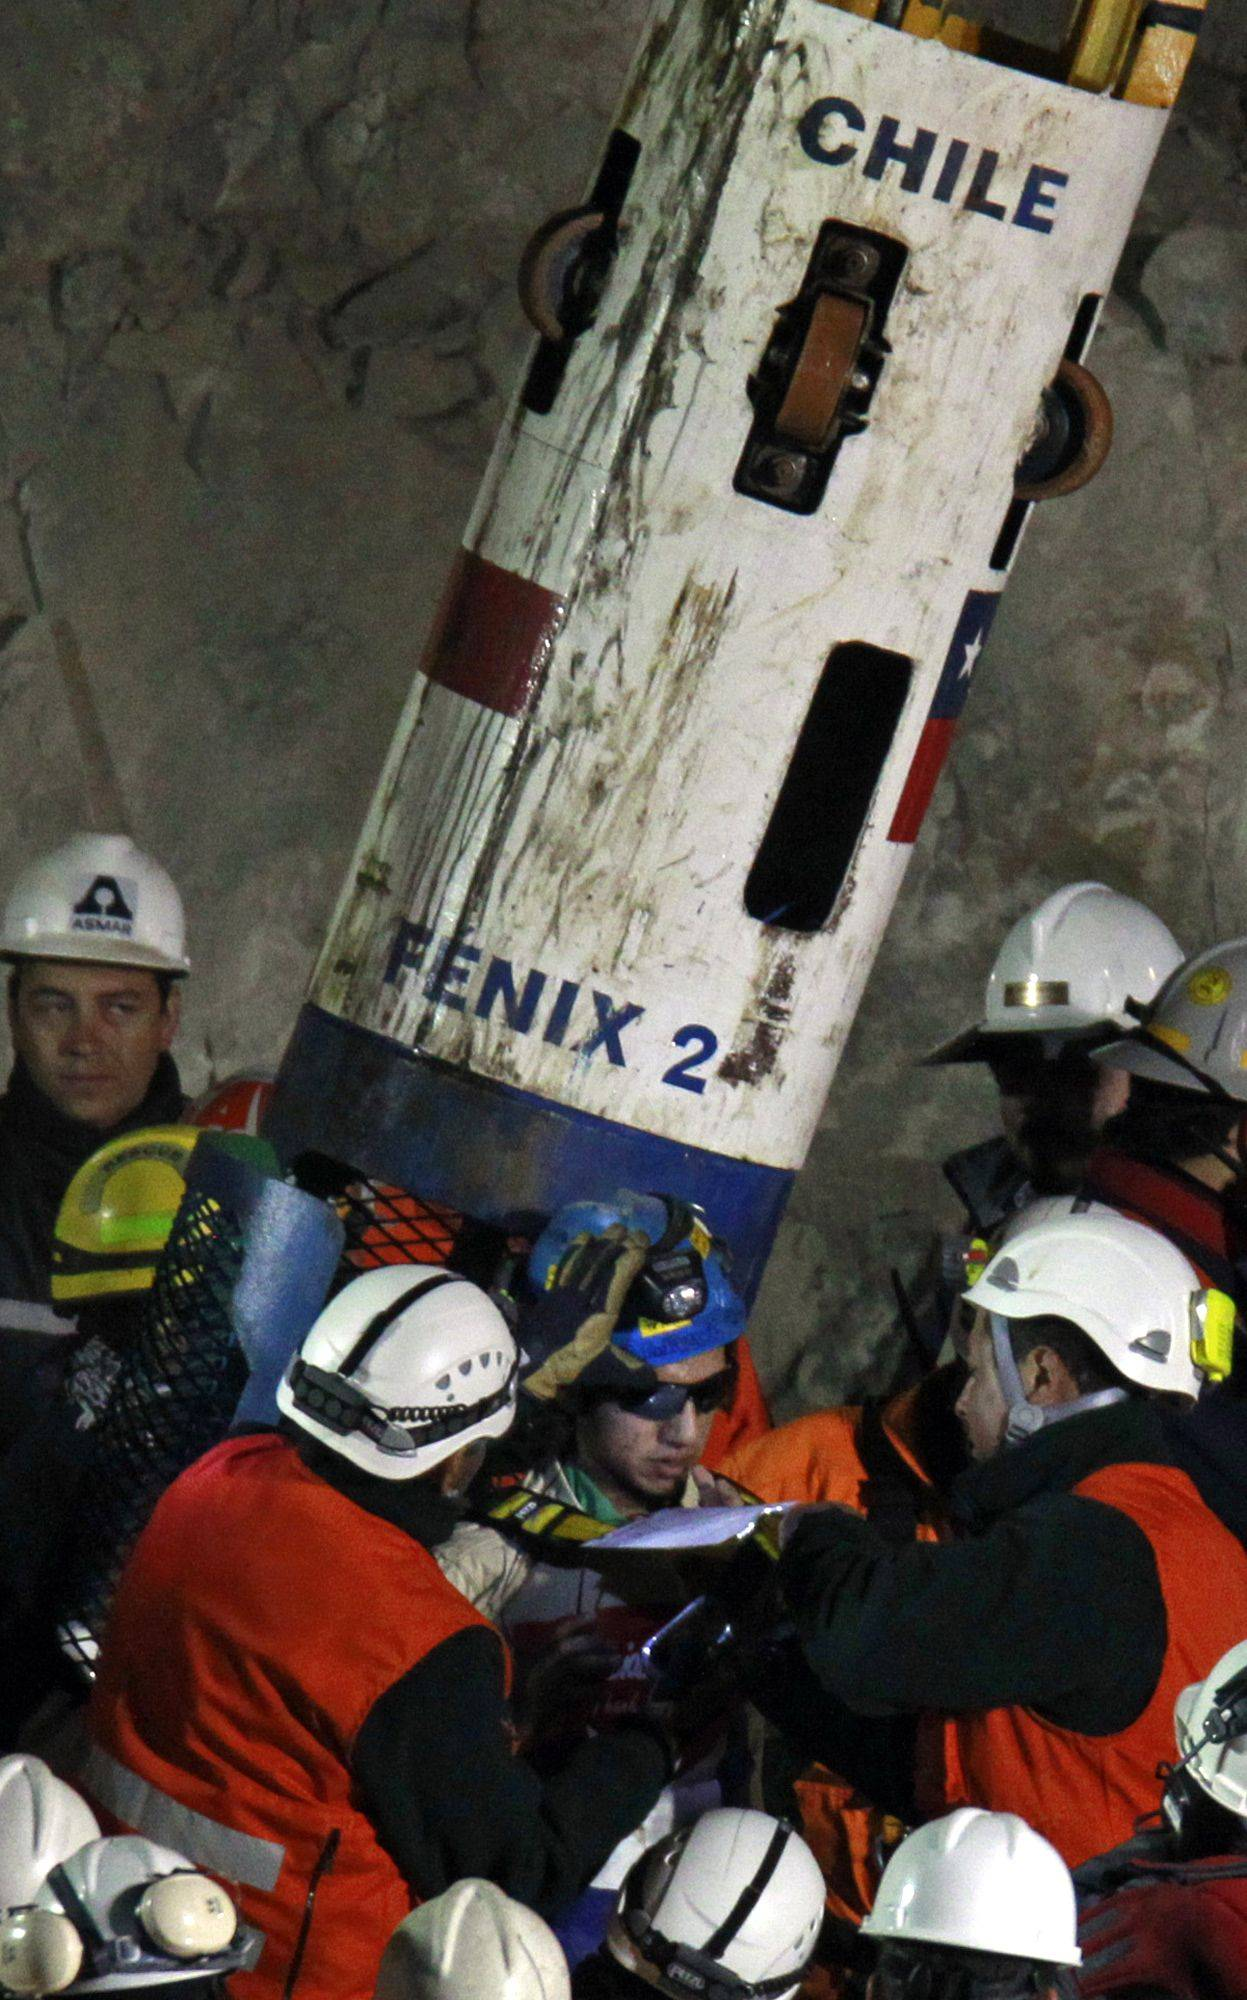 Miner Jimmy Sanchez, bottom center, is helped out of the capsule after being rescued from the collapsed San Jose gold and copper mine where he was trapped with 32 other miners for over two months near Copiapo, Chile, early Wednesday Oct. 13, 2010.